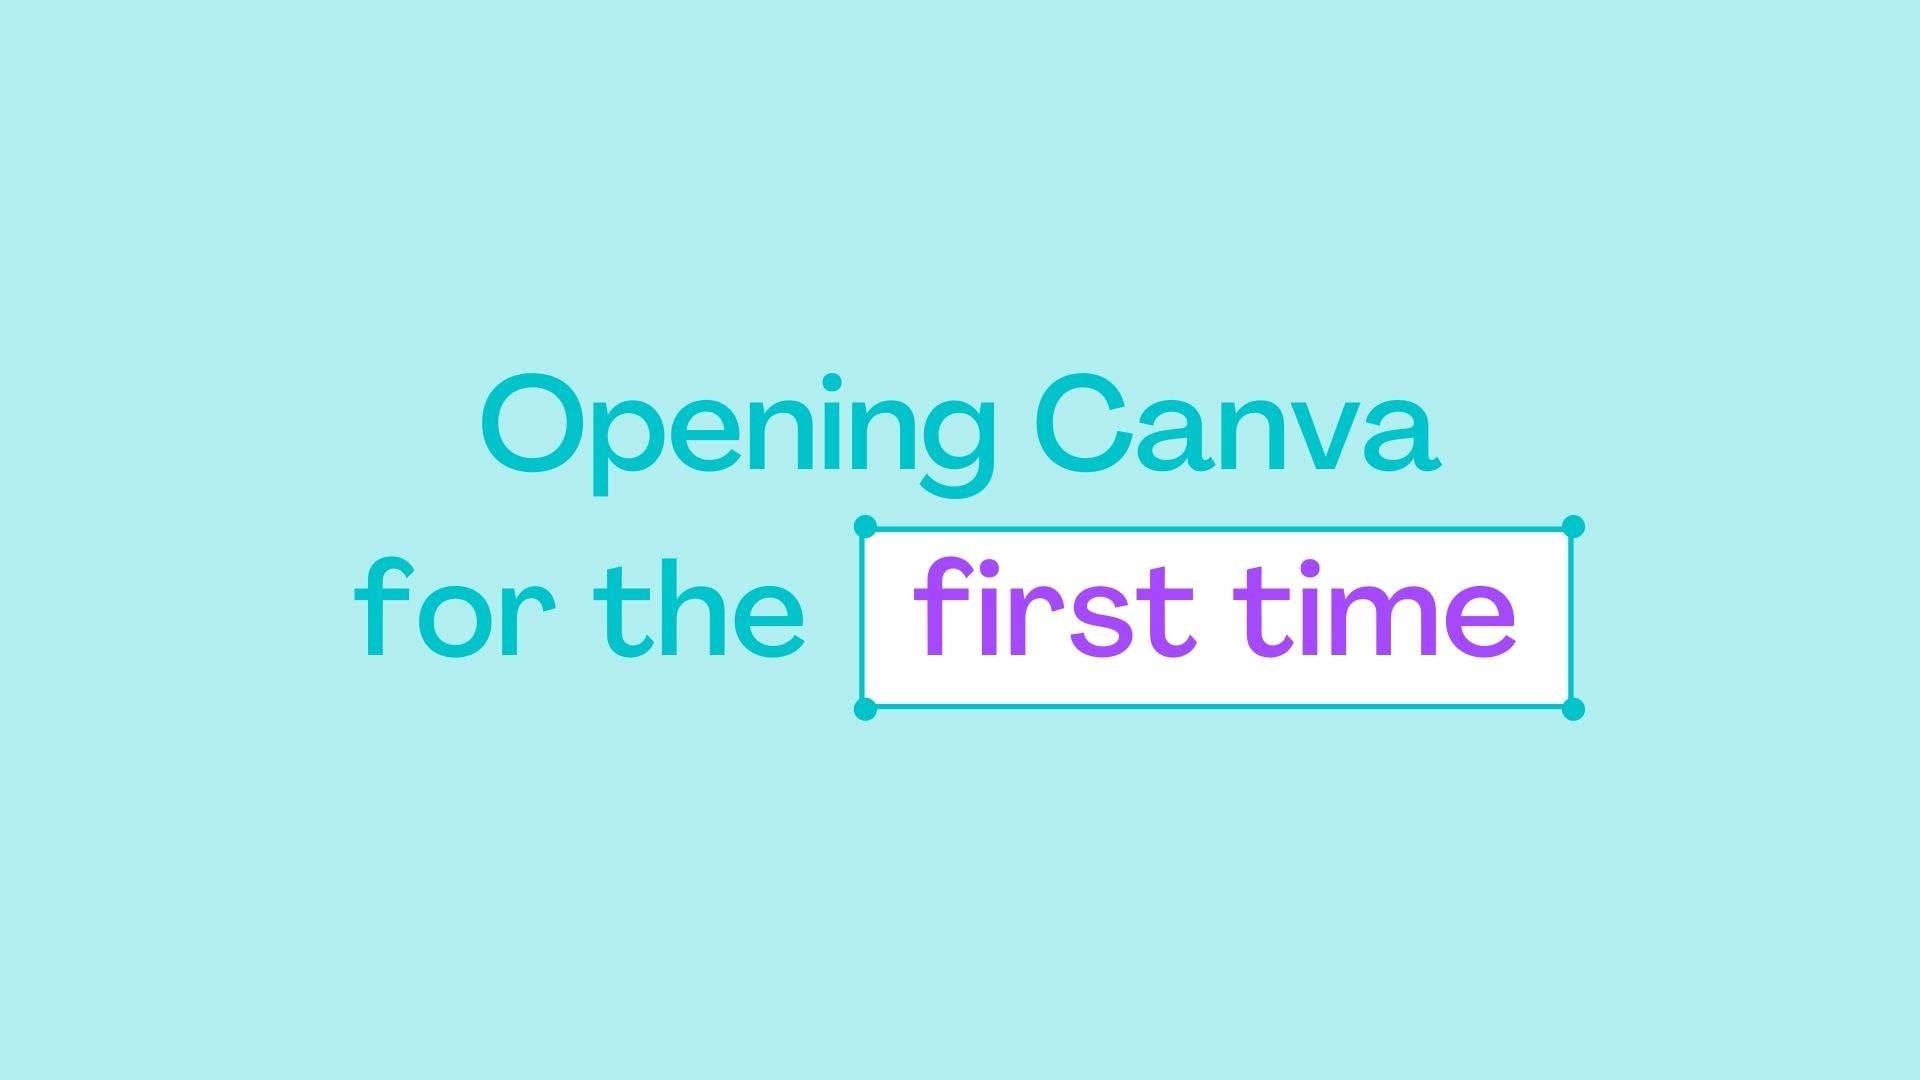 1.1 Opening Canva for the first time V2